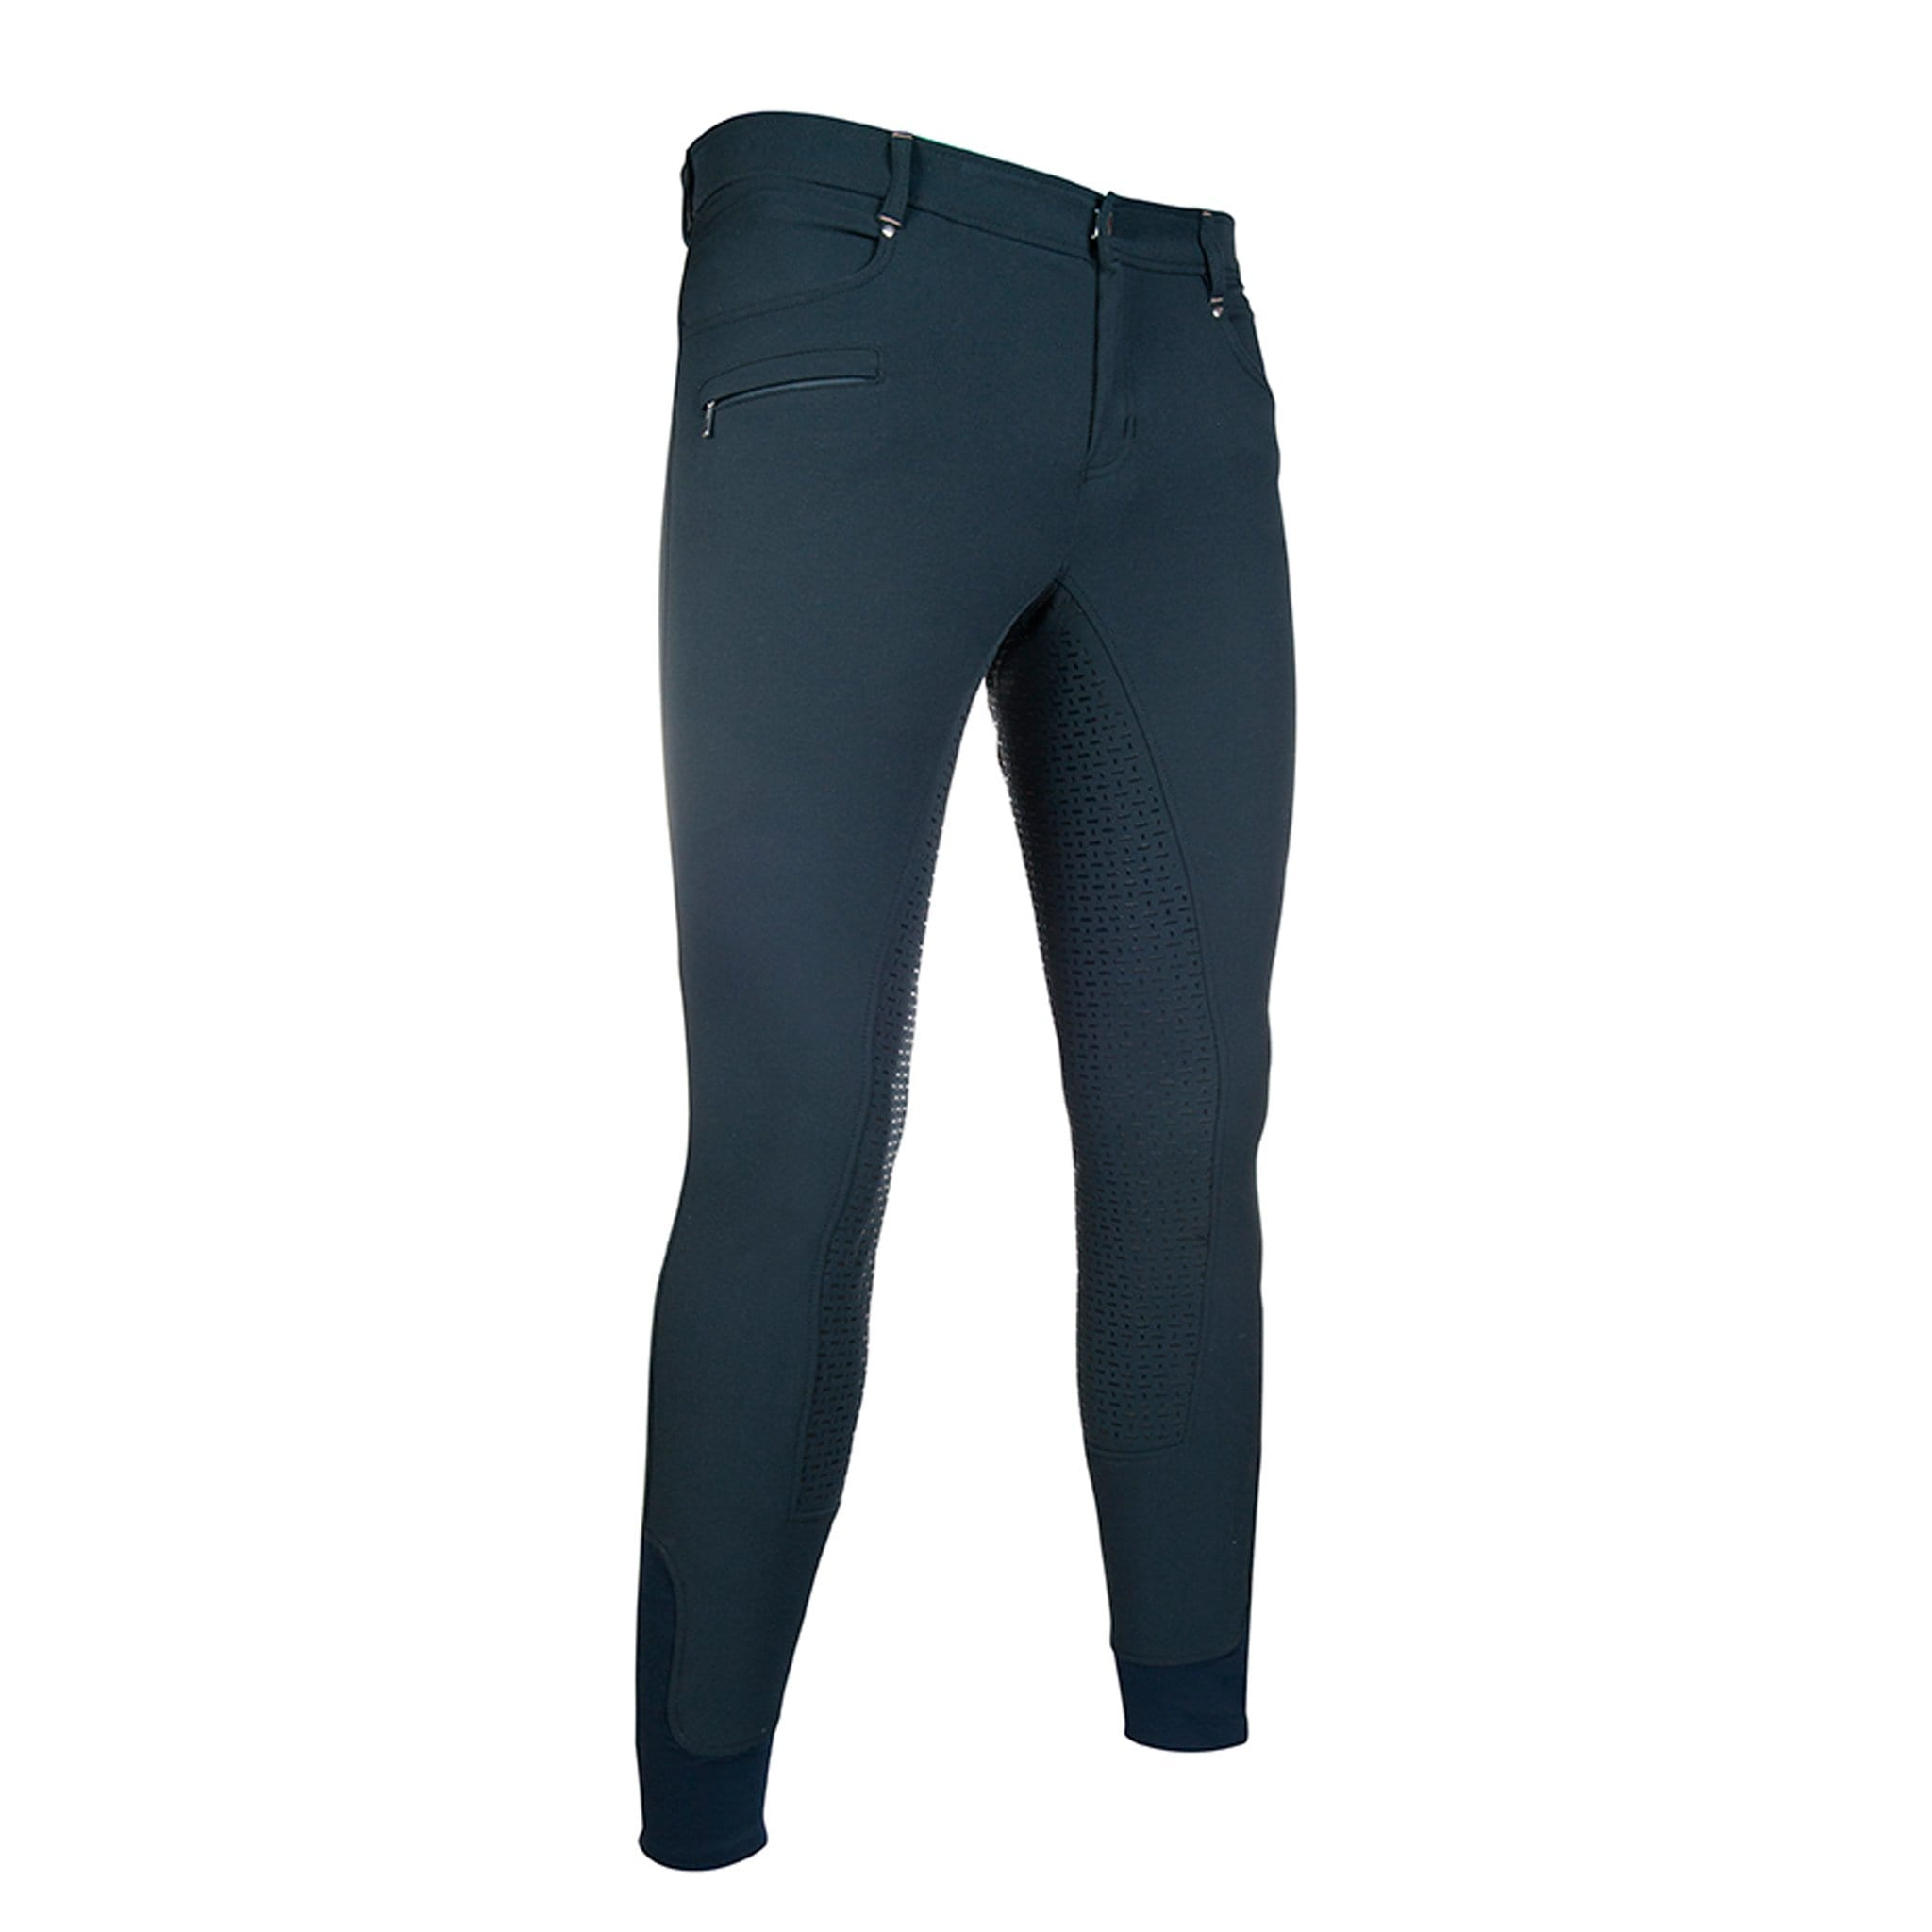 10904 HKM Men's San Lorenzo Silicone Full Seat Breeches Kingston Navy Graphite